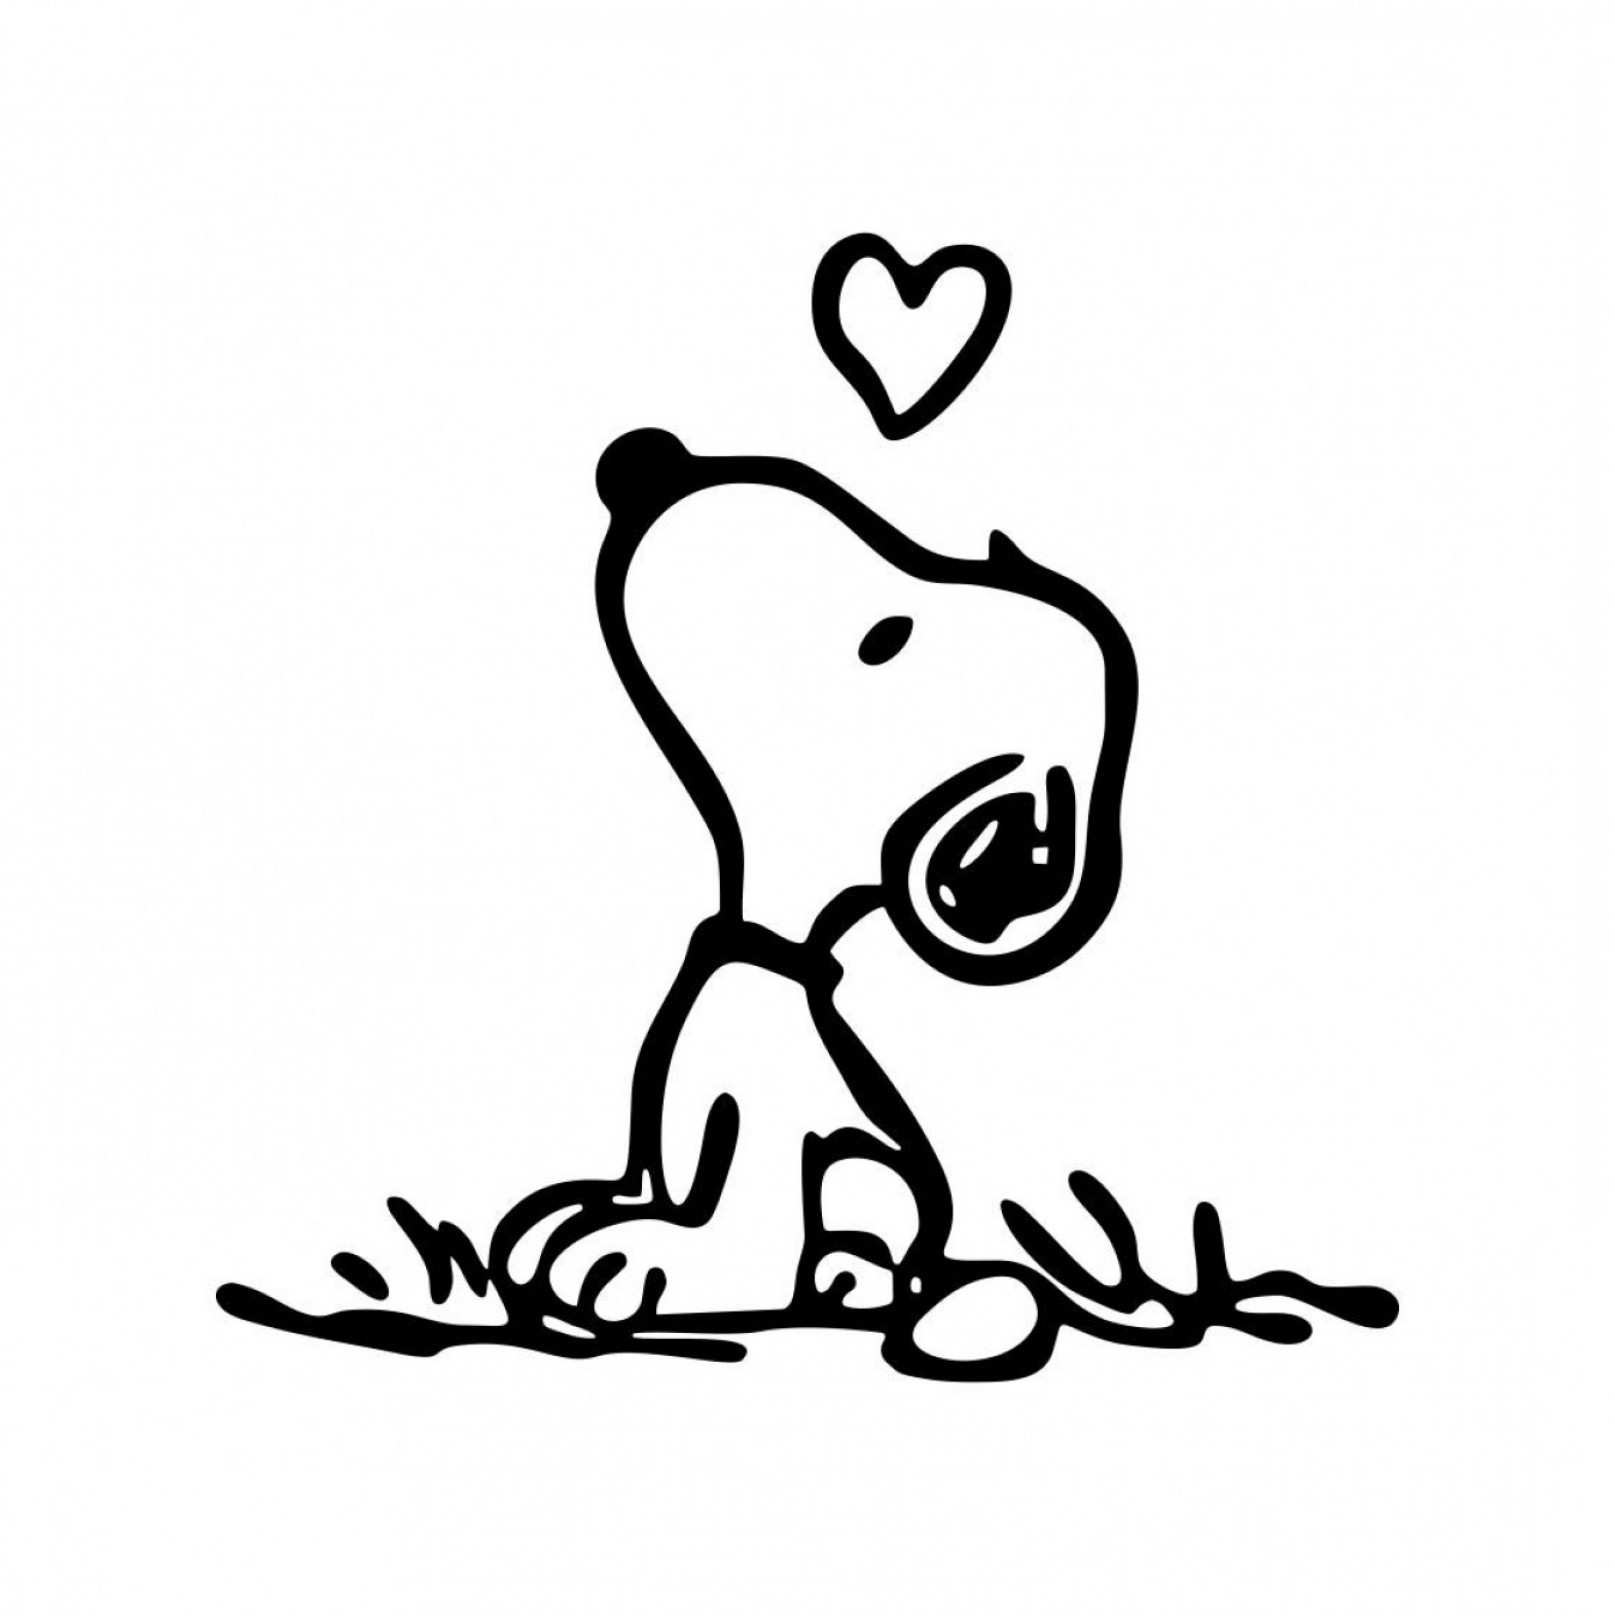 Snoopy Vector Graphic: Snoopy Love Graphics Svg Dxf Eps Png Cdr